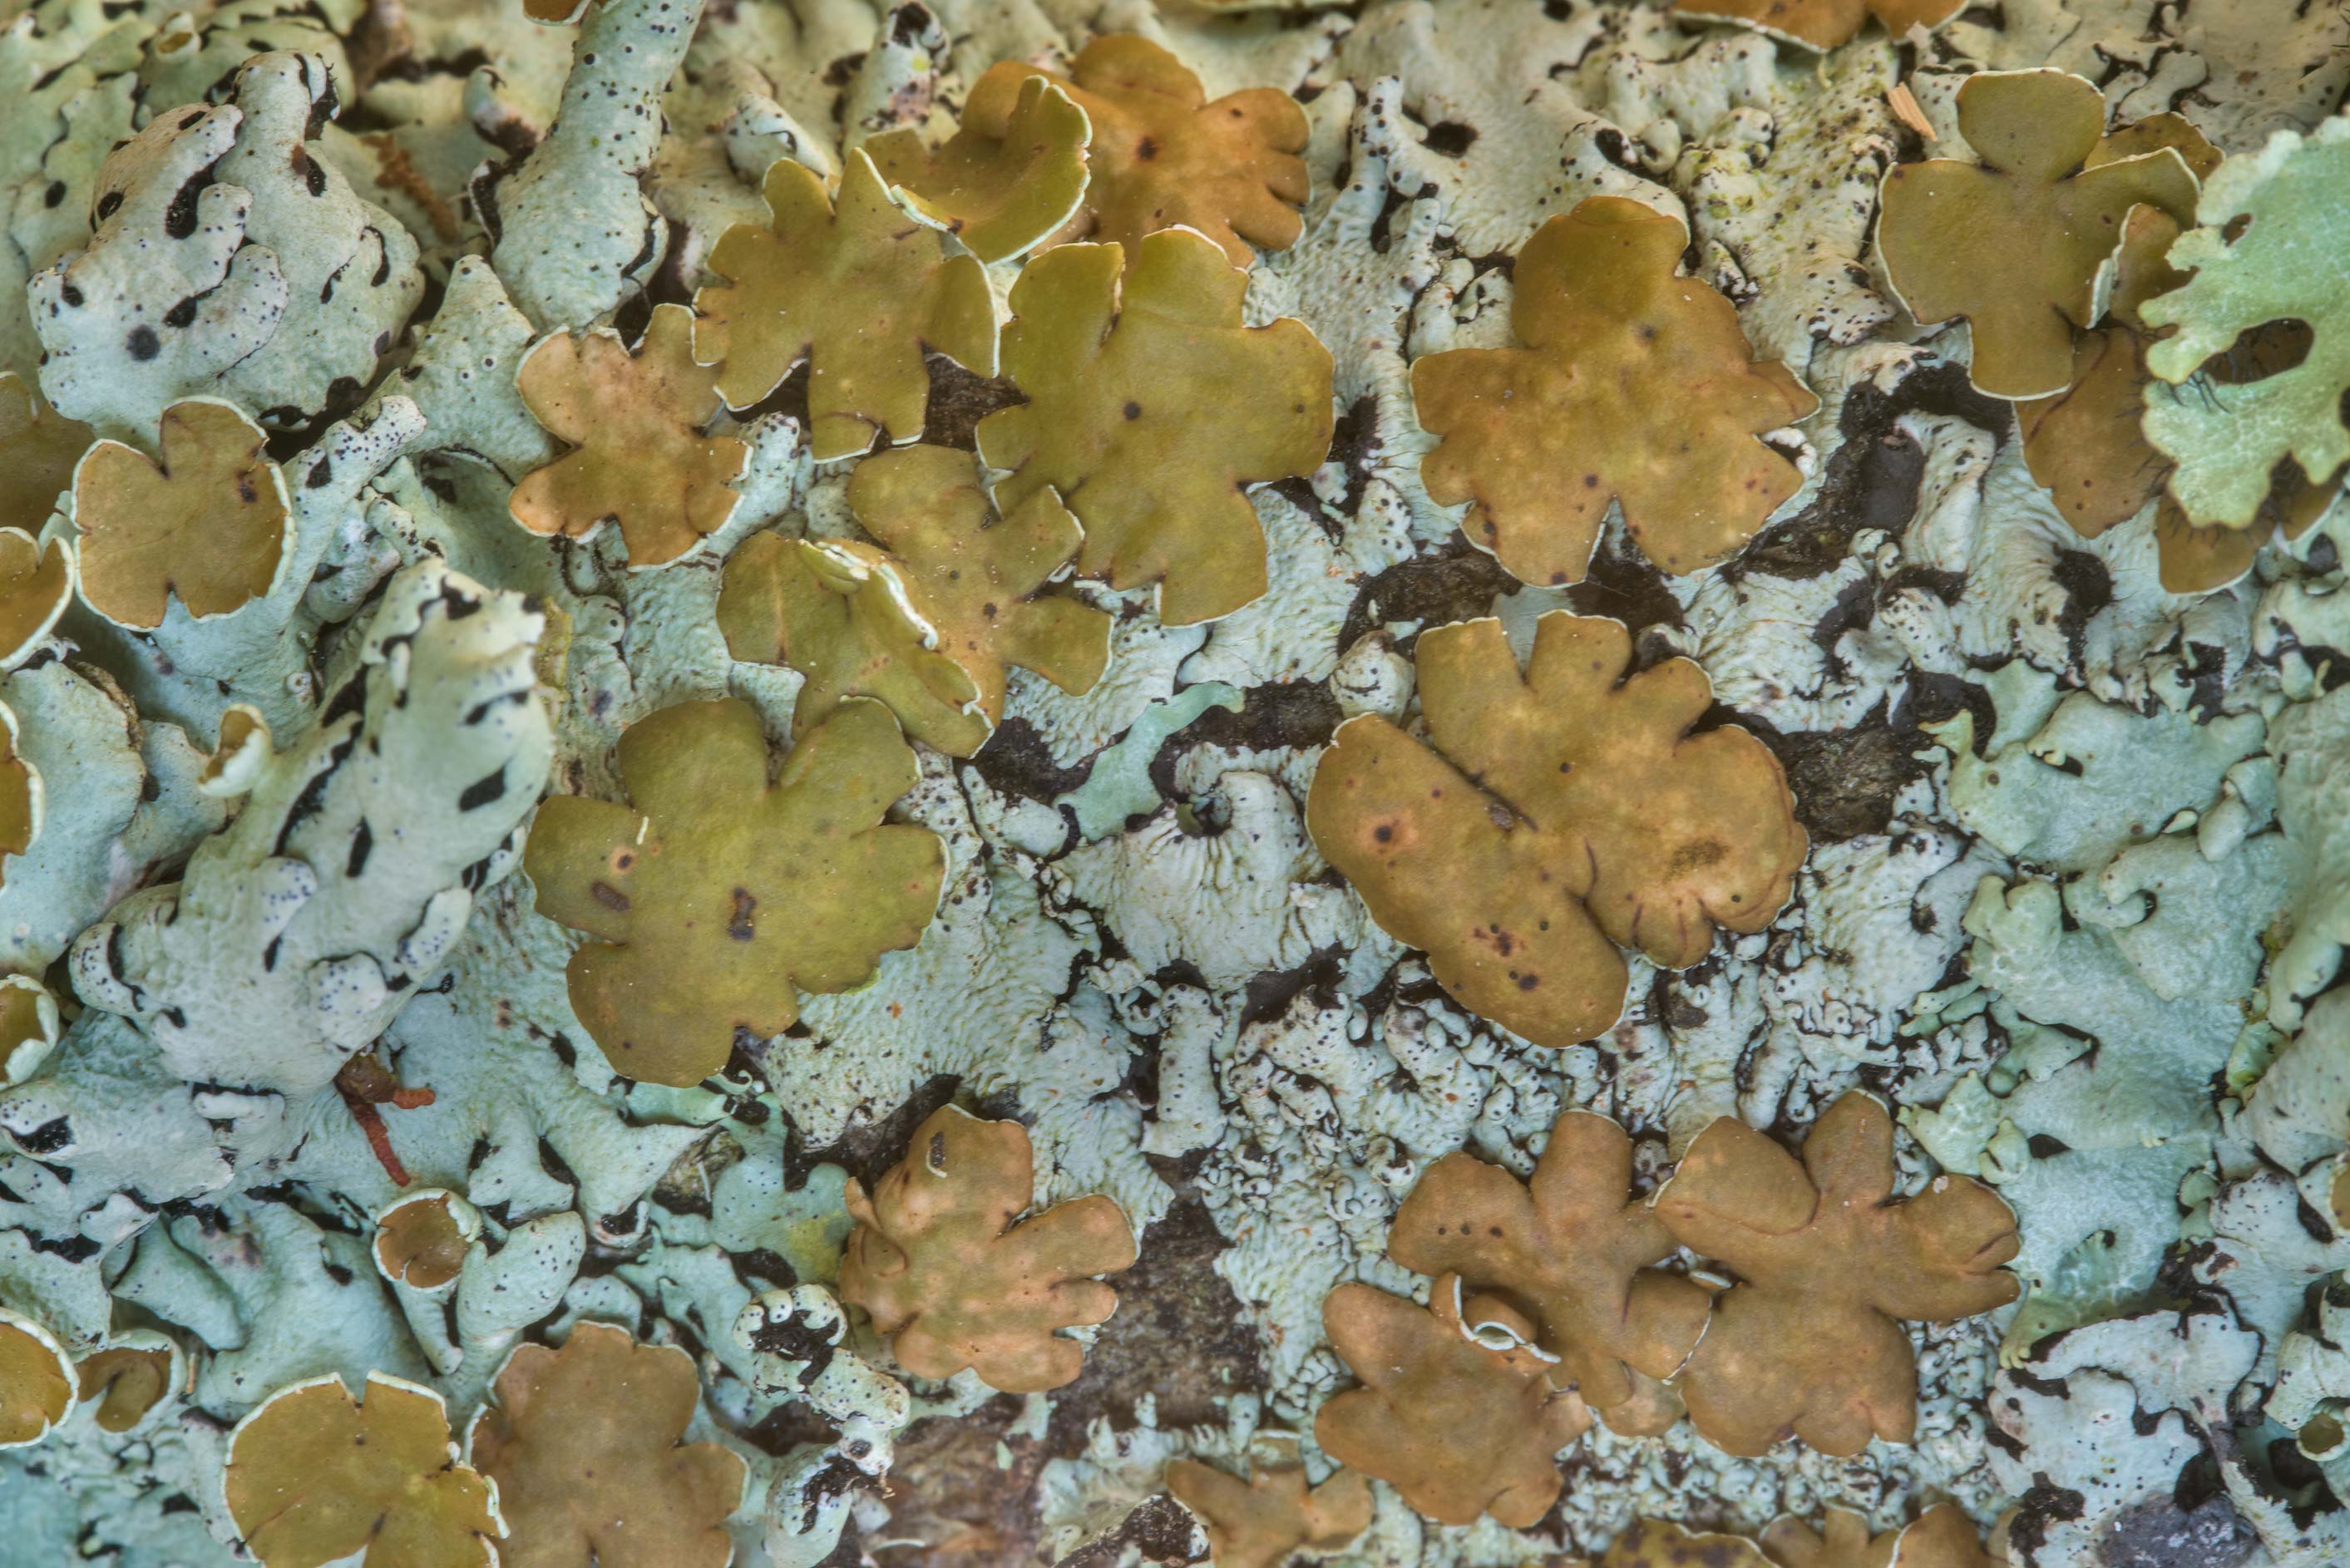 Wrinkled loop lichen (Hypotrachyna livida) on a...National Forest. Shepherd, Texas